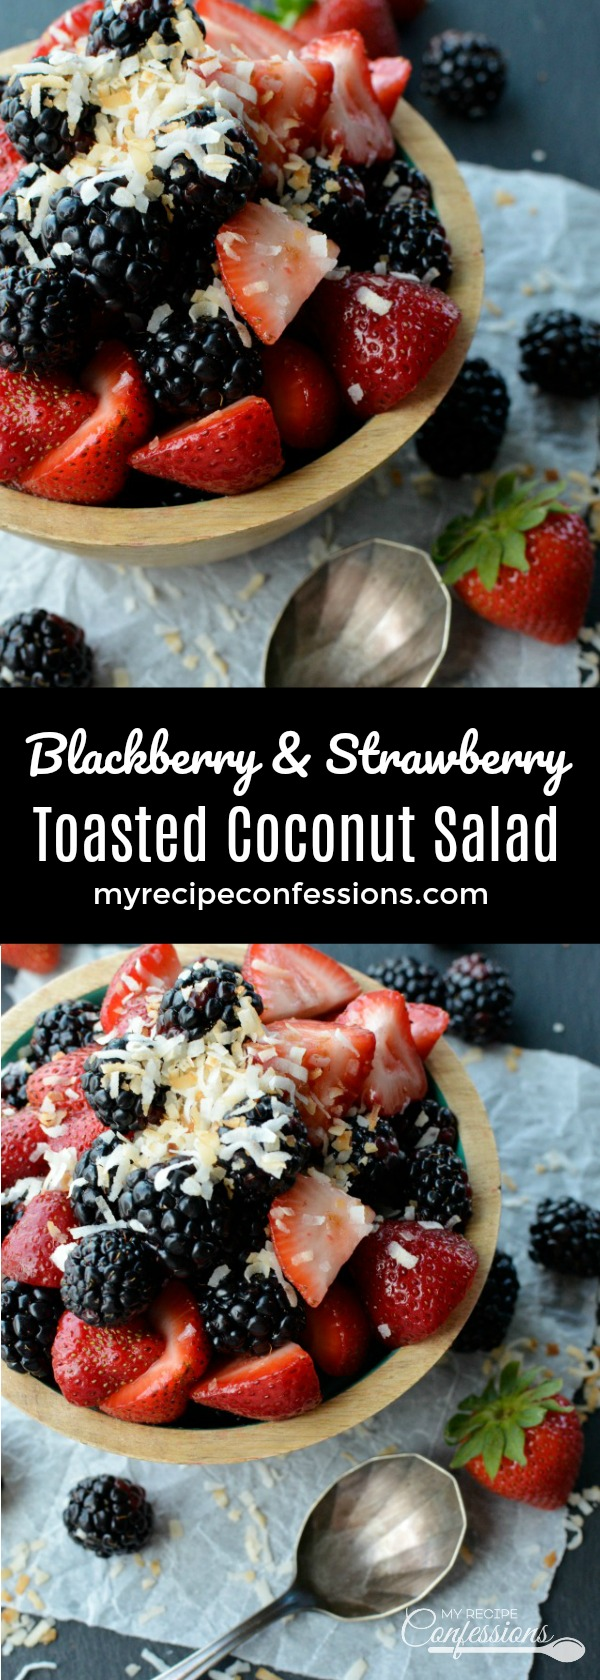 Blackberry and Strawberry Toasted Coconut Salad is the easiest fruit salad recipe you will ever make! The toasted coconut is amazing with the fresh strawberries and blackberries. It's so good you will want to skip dessert and just eat this salad instead!